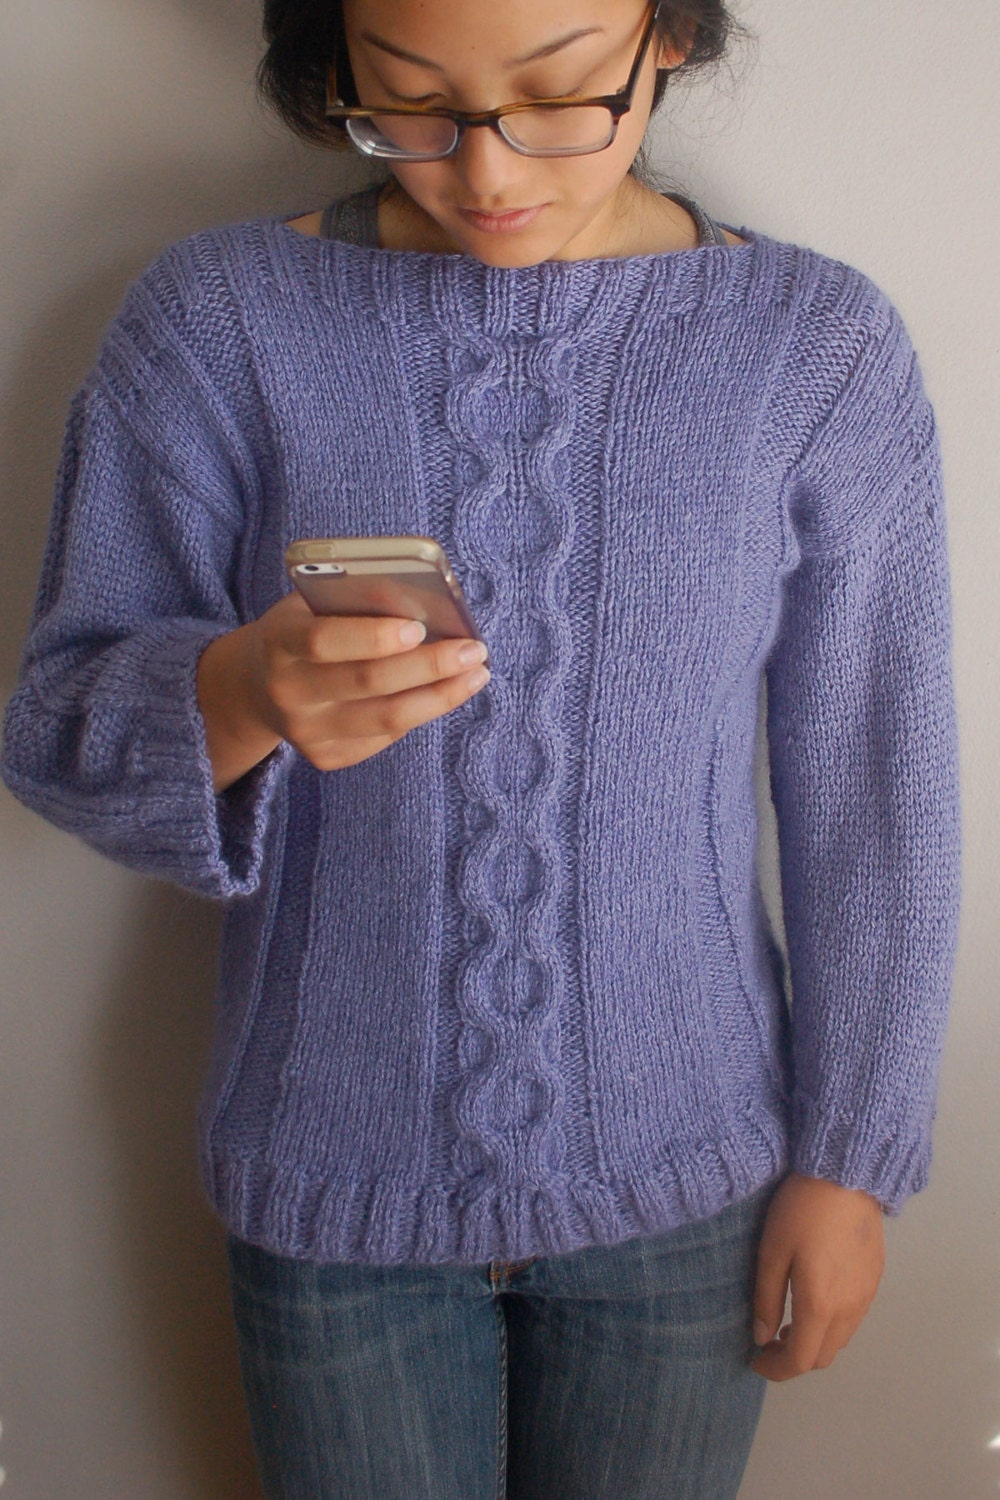 Cable Sweater, Knitting Pattern, easy to knit, Pullover Sweater, Fall Sweater...